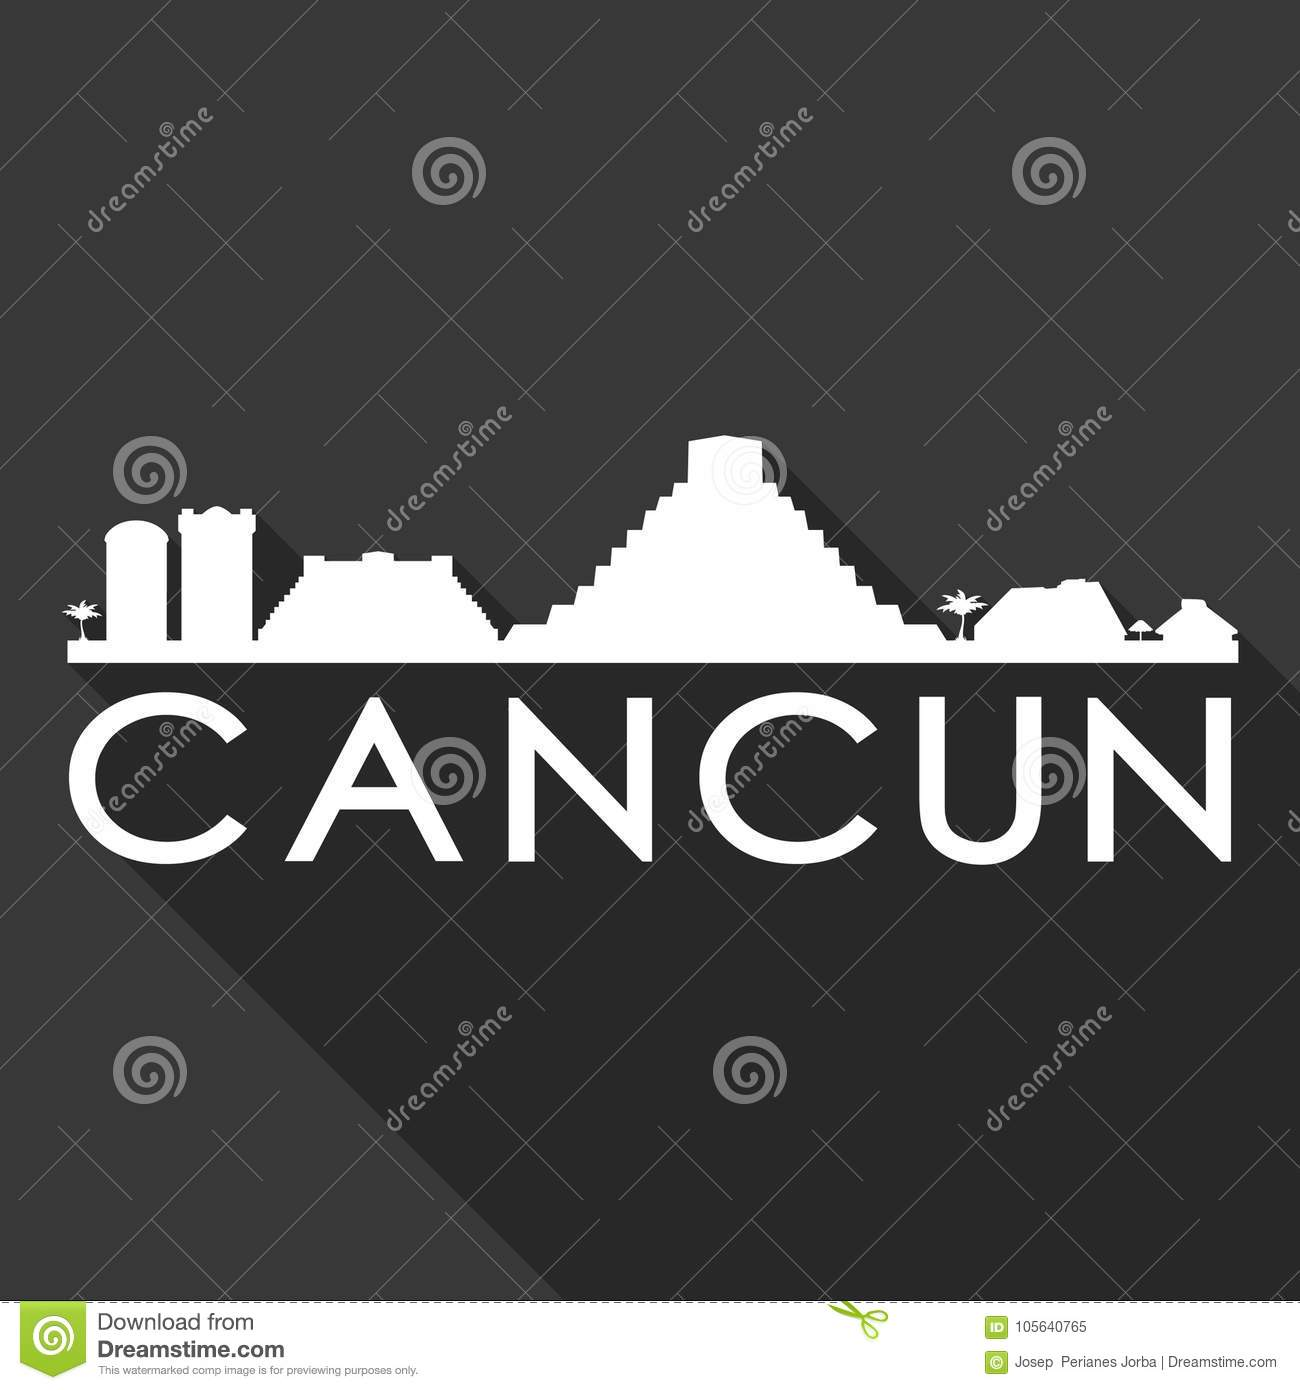 Cancun Mexico North America Icon Vector Art Flat Shadow Design